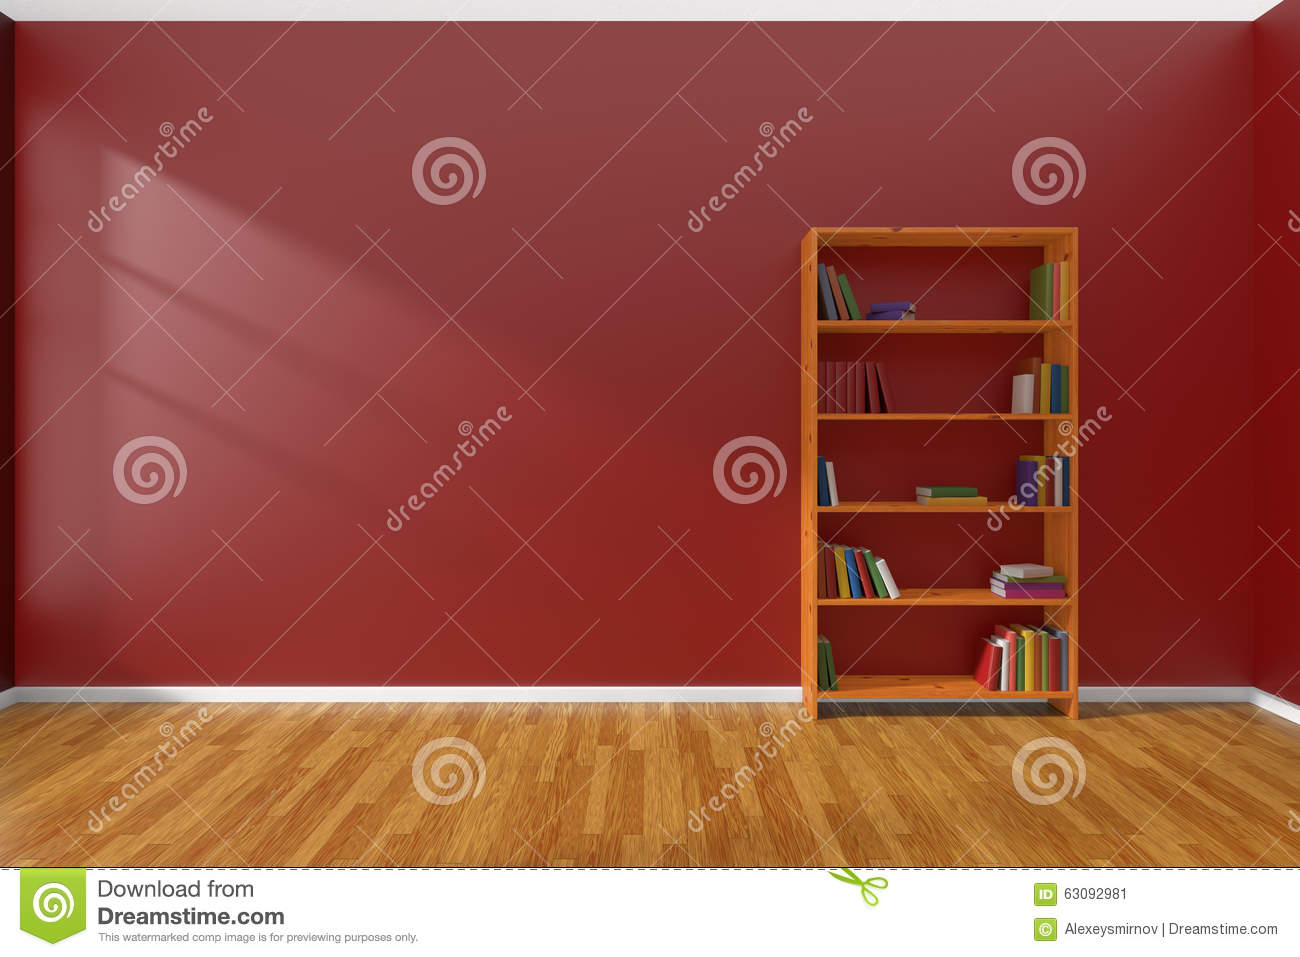 Minimalist interior of empty red room with